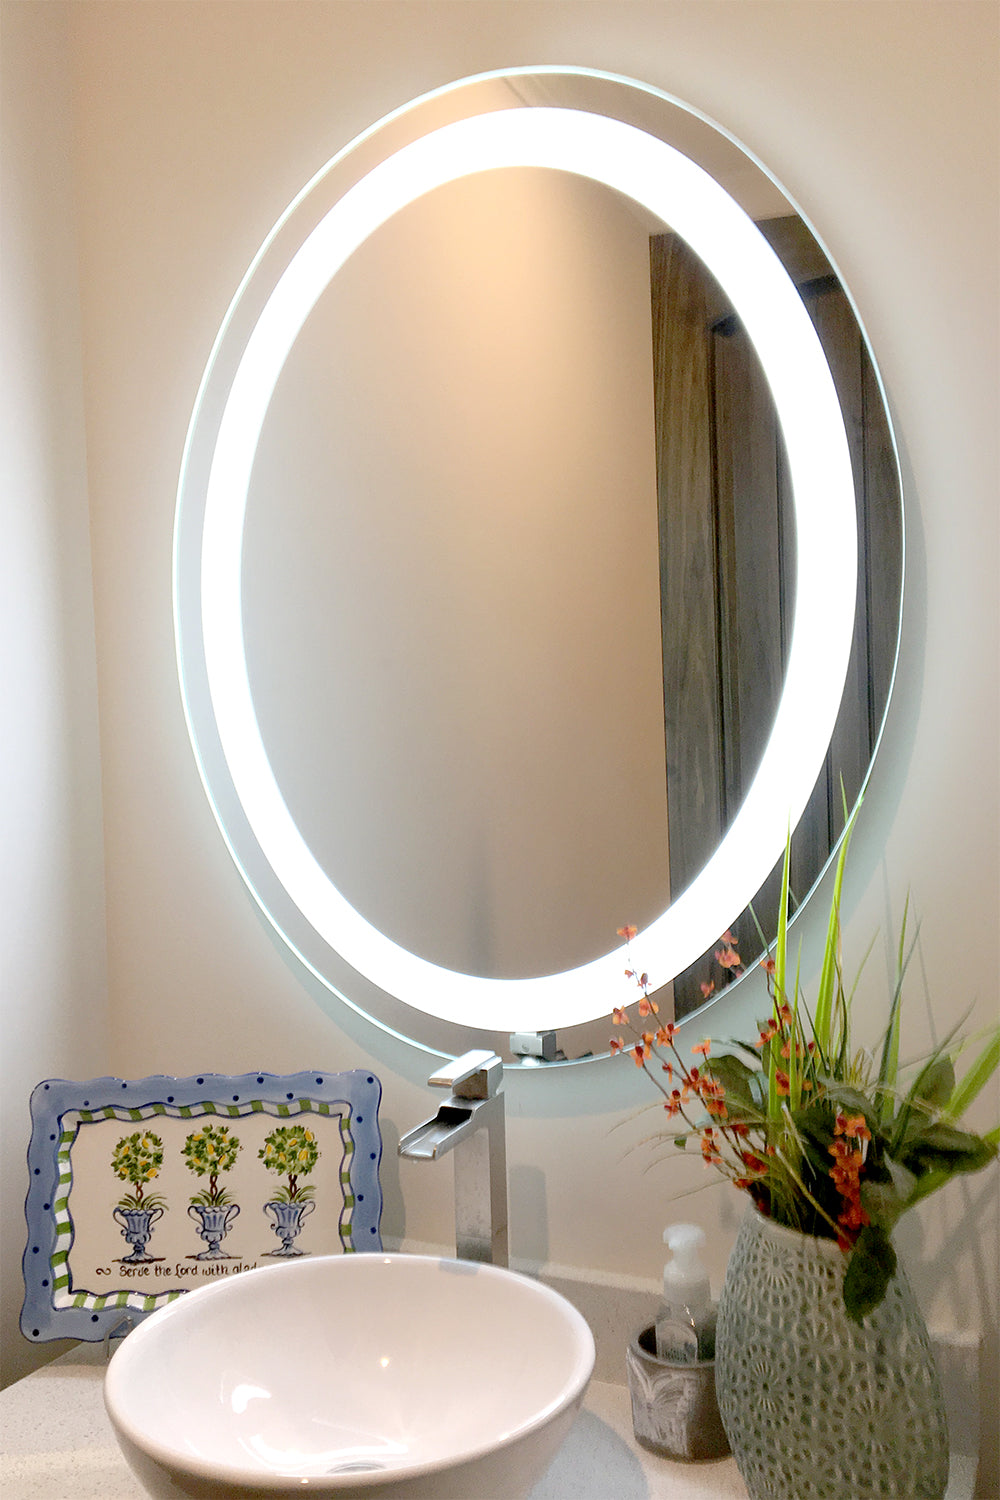 Front Lighted Led Bathroom Vanity Mirror 32 Quot X 40 Quot Oval